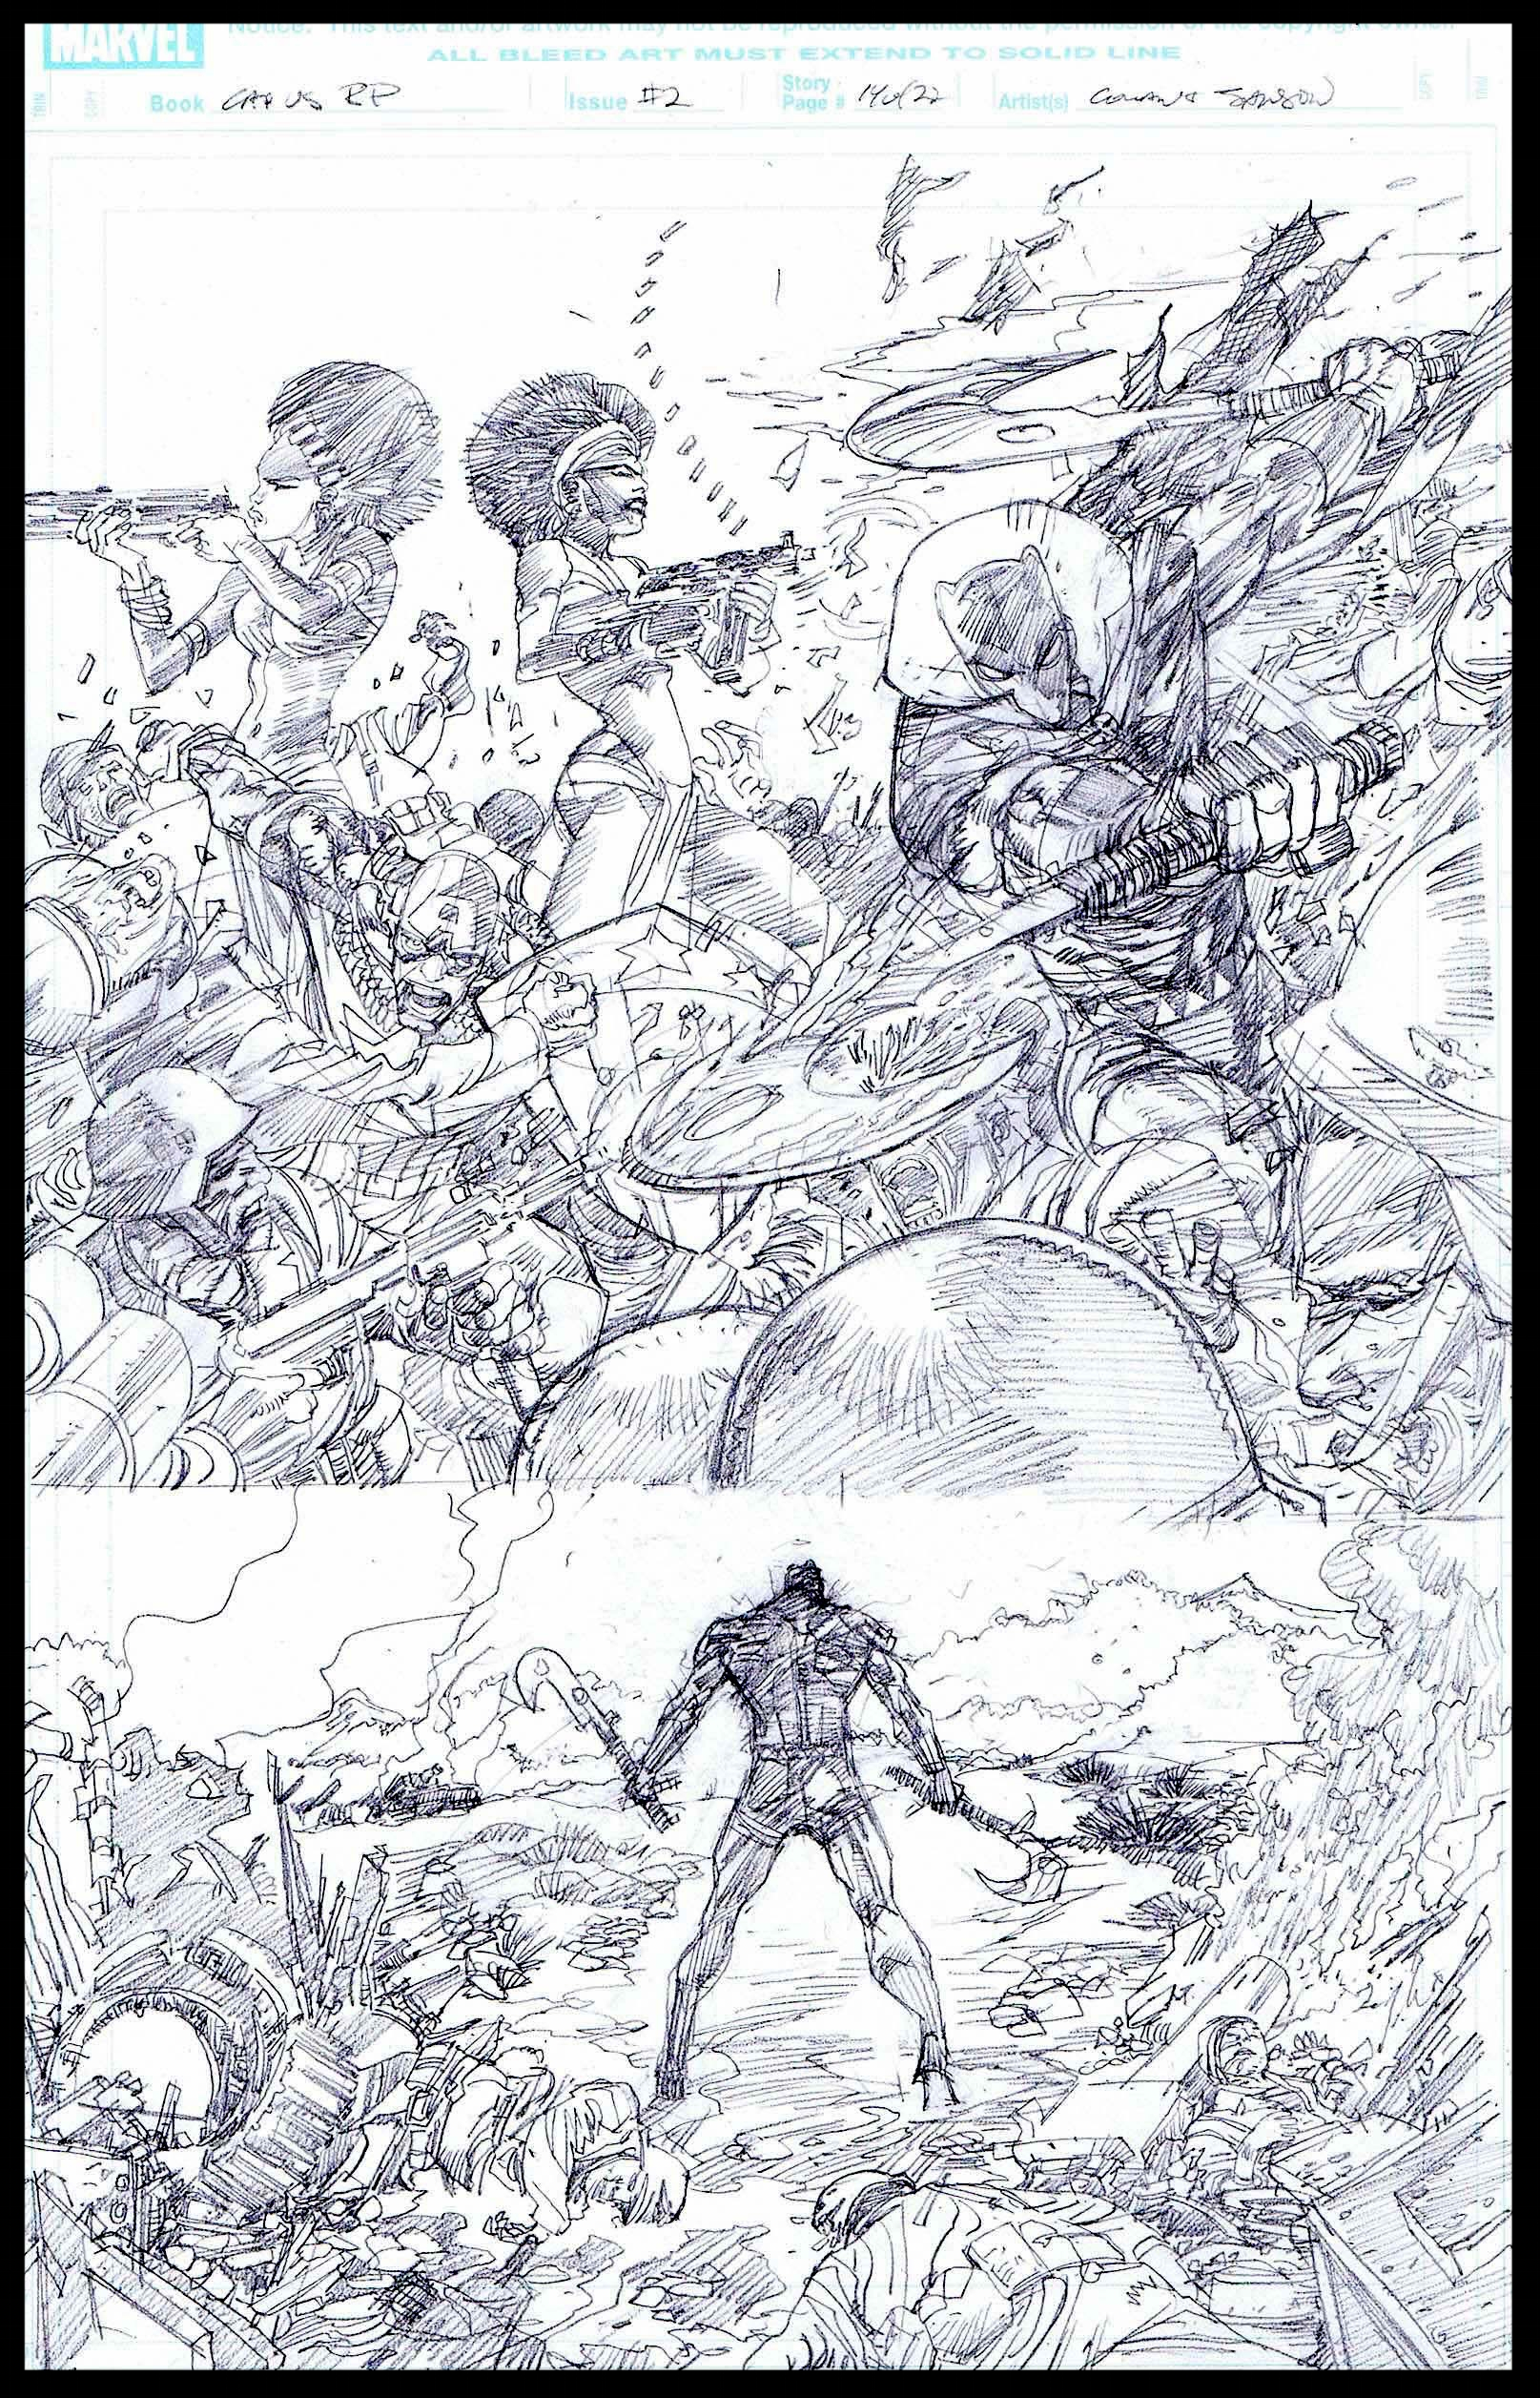 Flags of Our Fathers #2 - Page 14 - Pencils